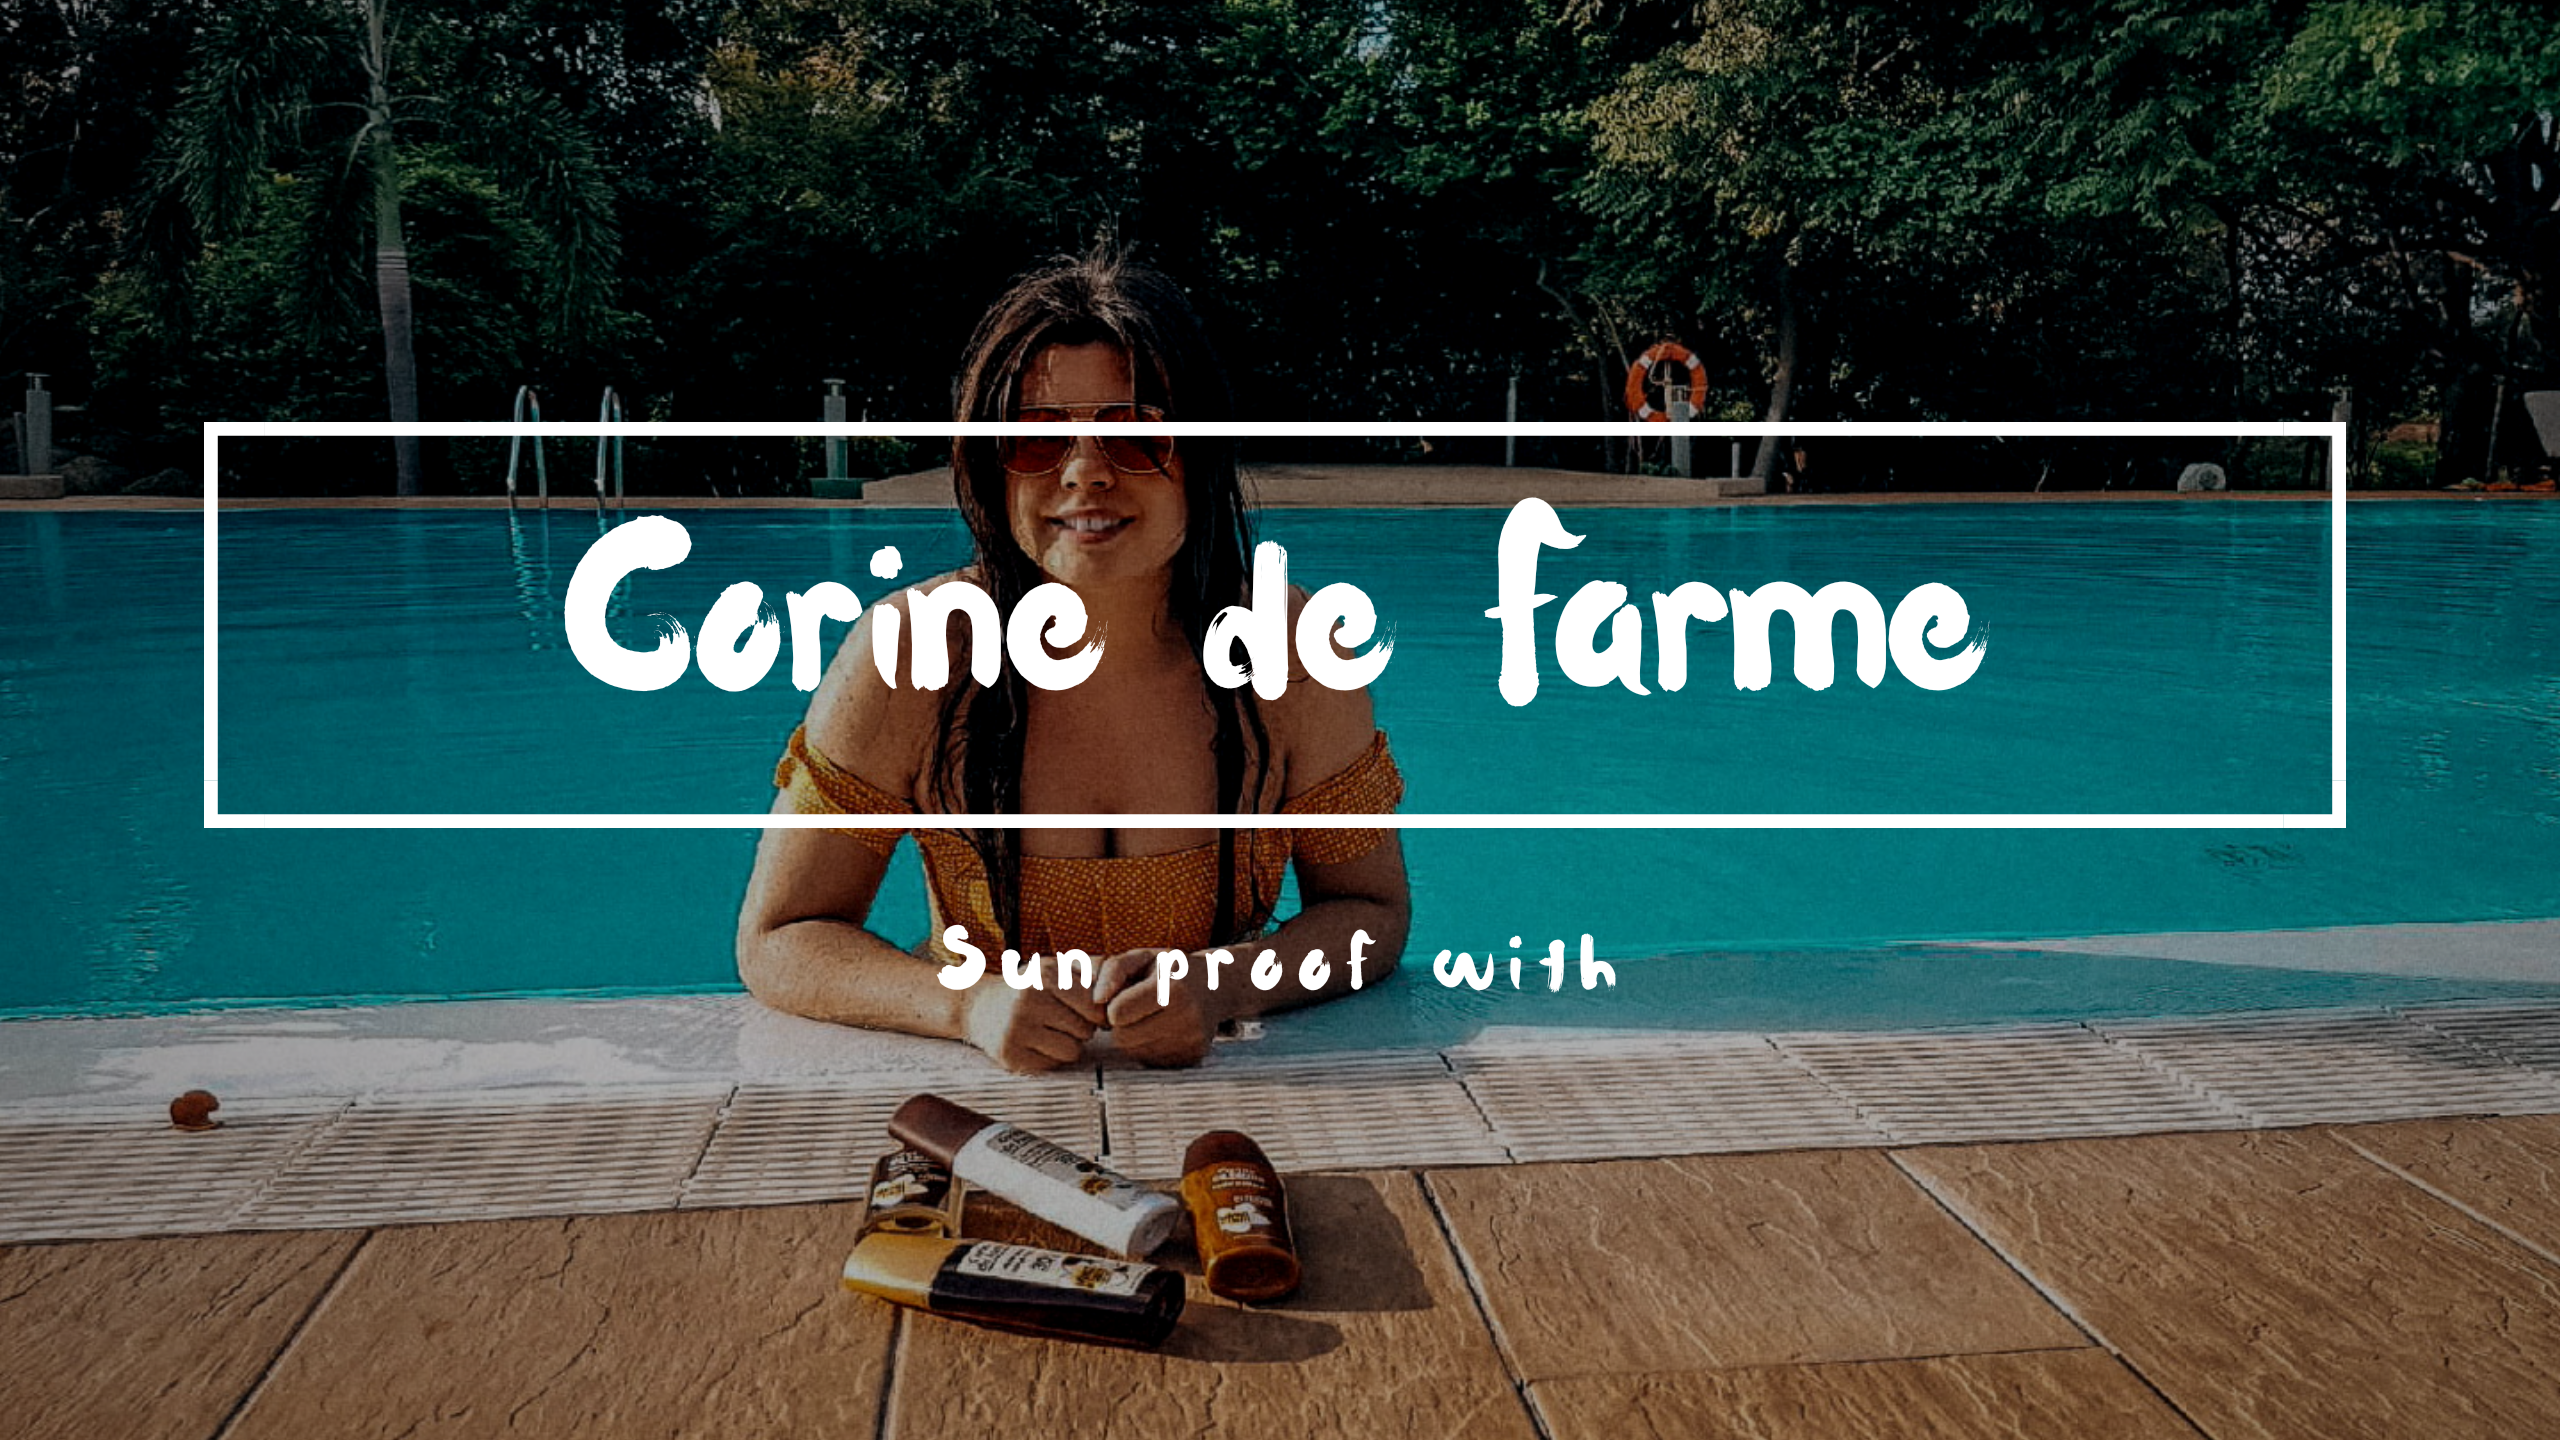 Sun proof with Corine de Farme